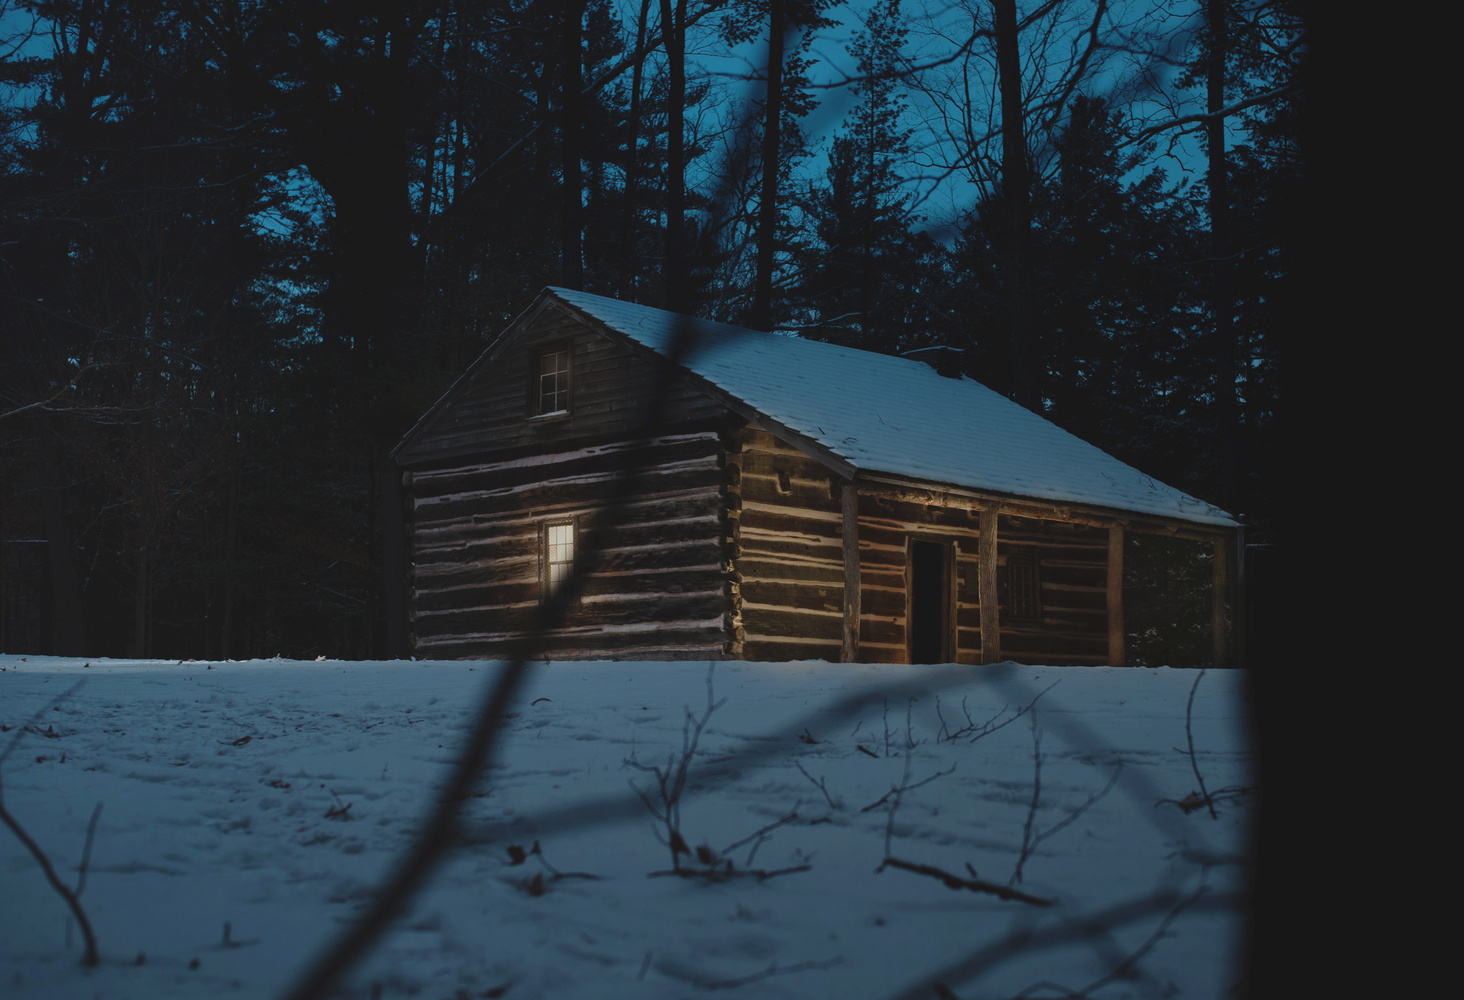 Cabin in the woods by Cole Bielecki